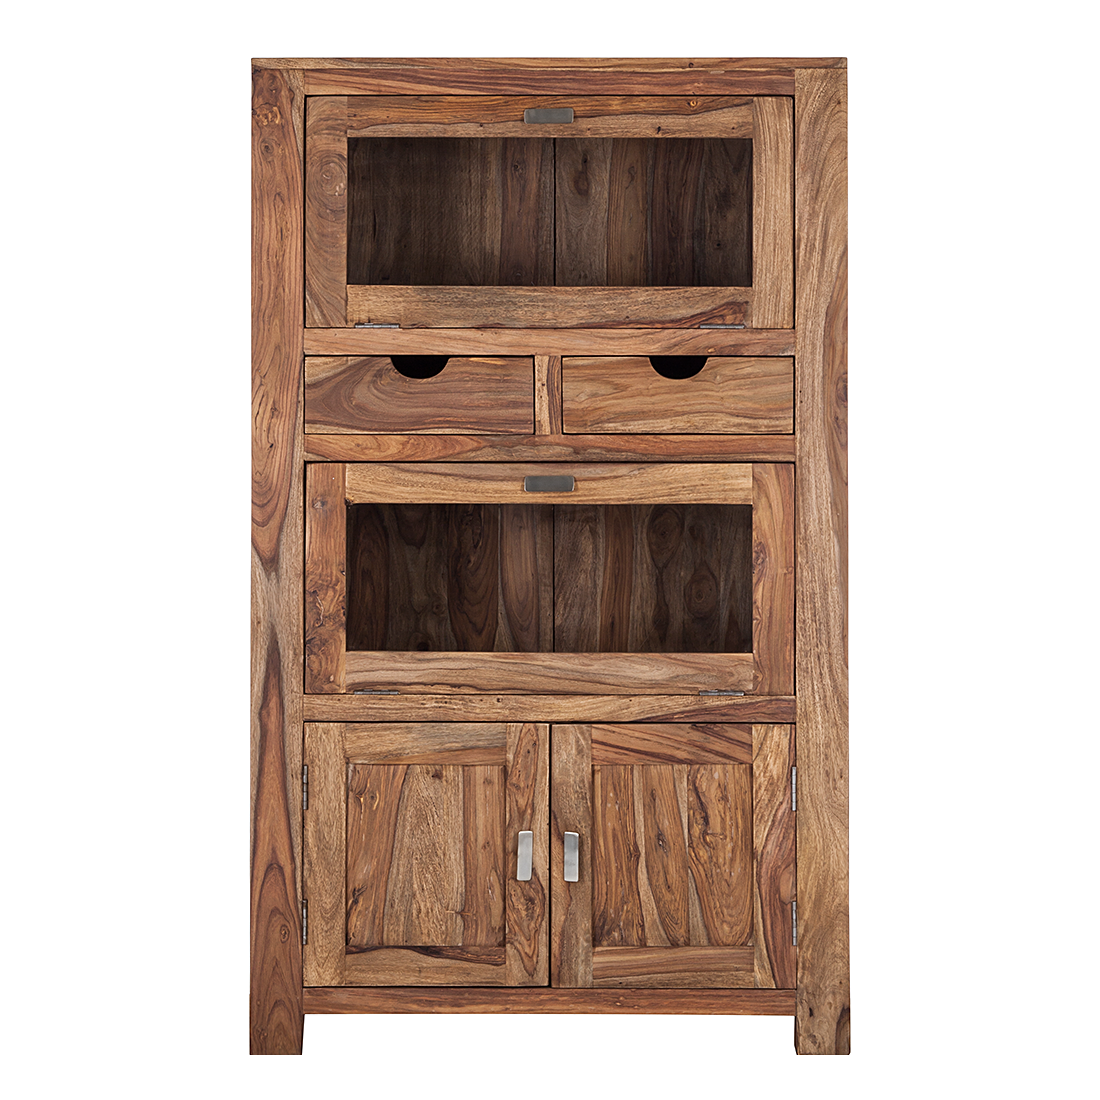 wolf m bel brotschrank massivholz palisander sheesham k chenschrank highboard. Black Bedroom Furniture Sets. Home Design Ideas